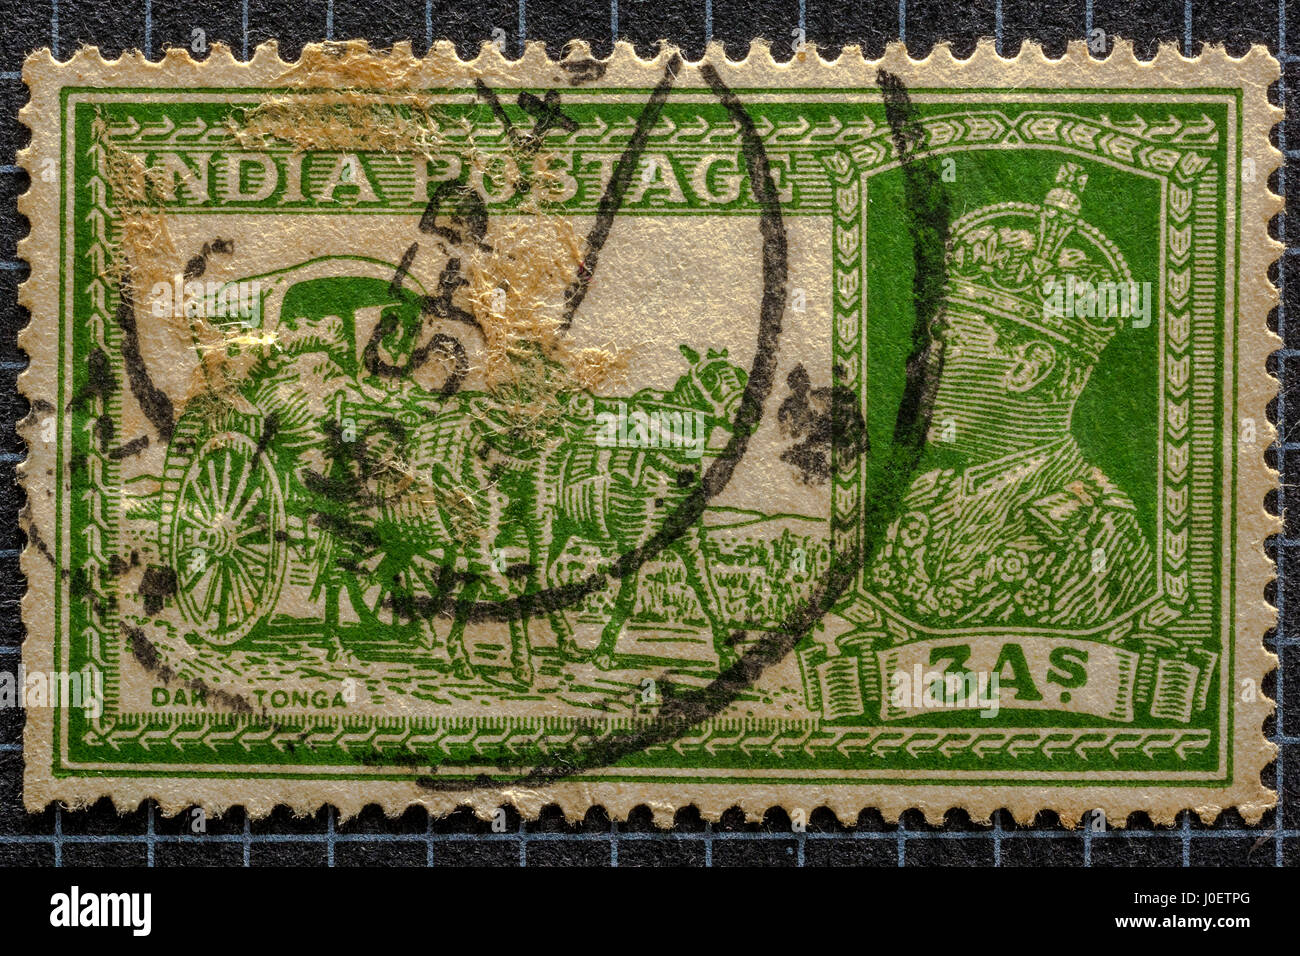 Transport dak tonga 3as, postage stamps, india, asia - Stock Image